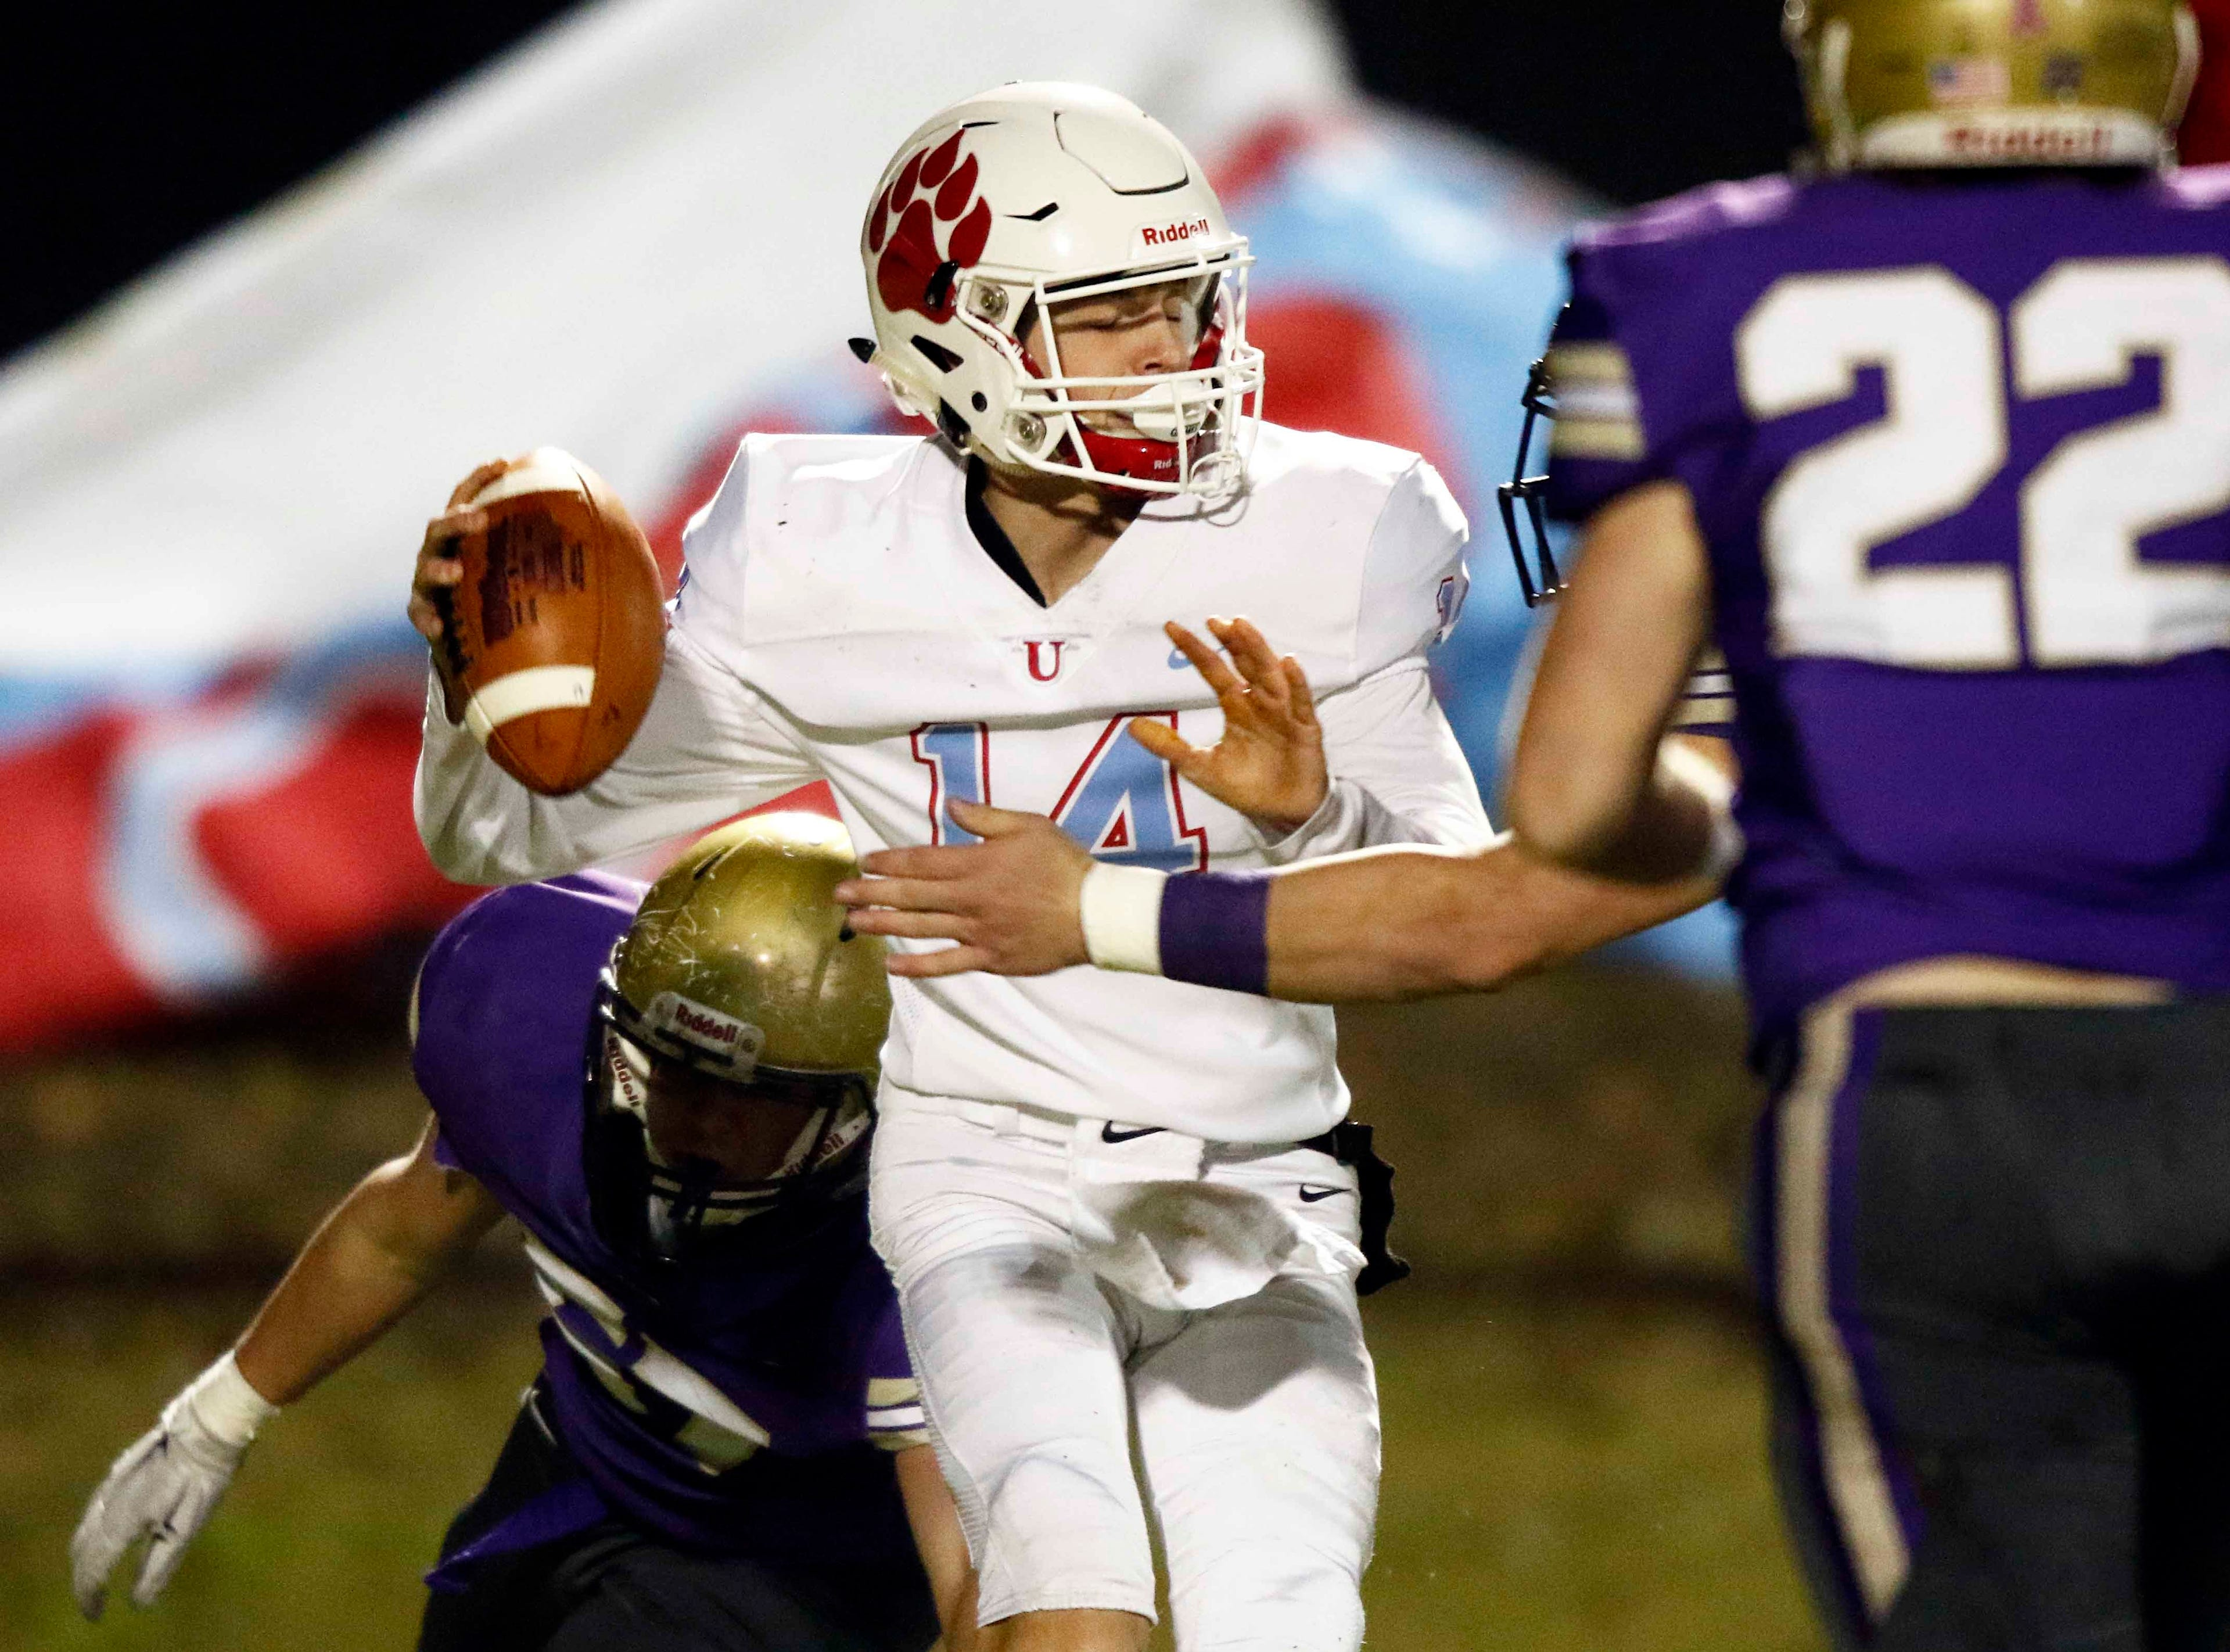 USJ quarterback Andrew Smith tries to avoid being sacked during their game against CPA Friday, Nov. 2, 2018, in Nashville, Tenn.